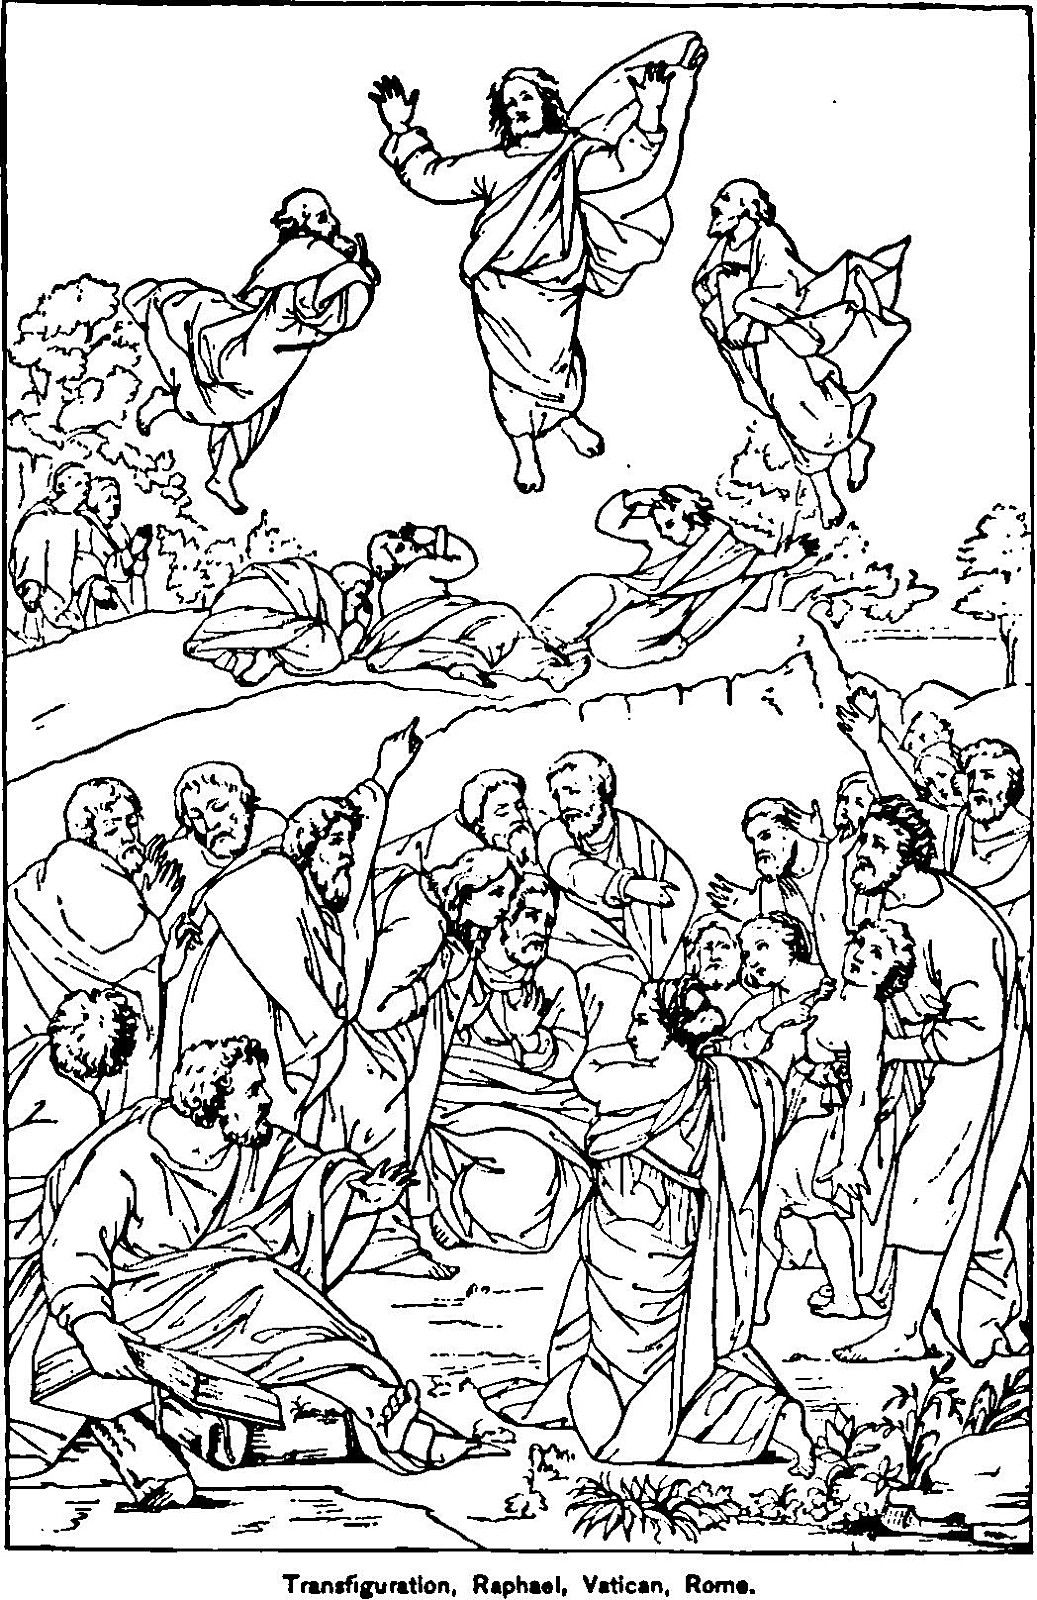 the transfiguration of jesus coloring page jesus transfiguration coloring page coloring home the jesus of transfiguration page coloring